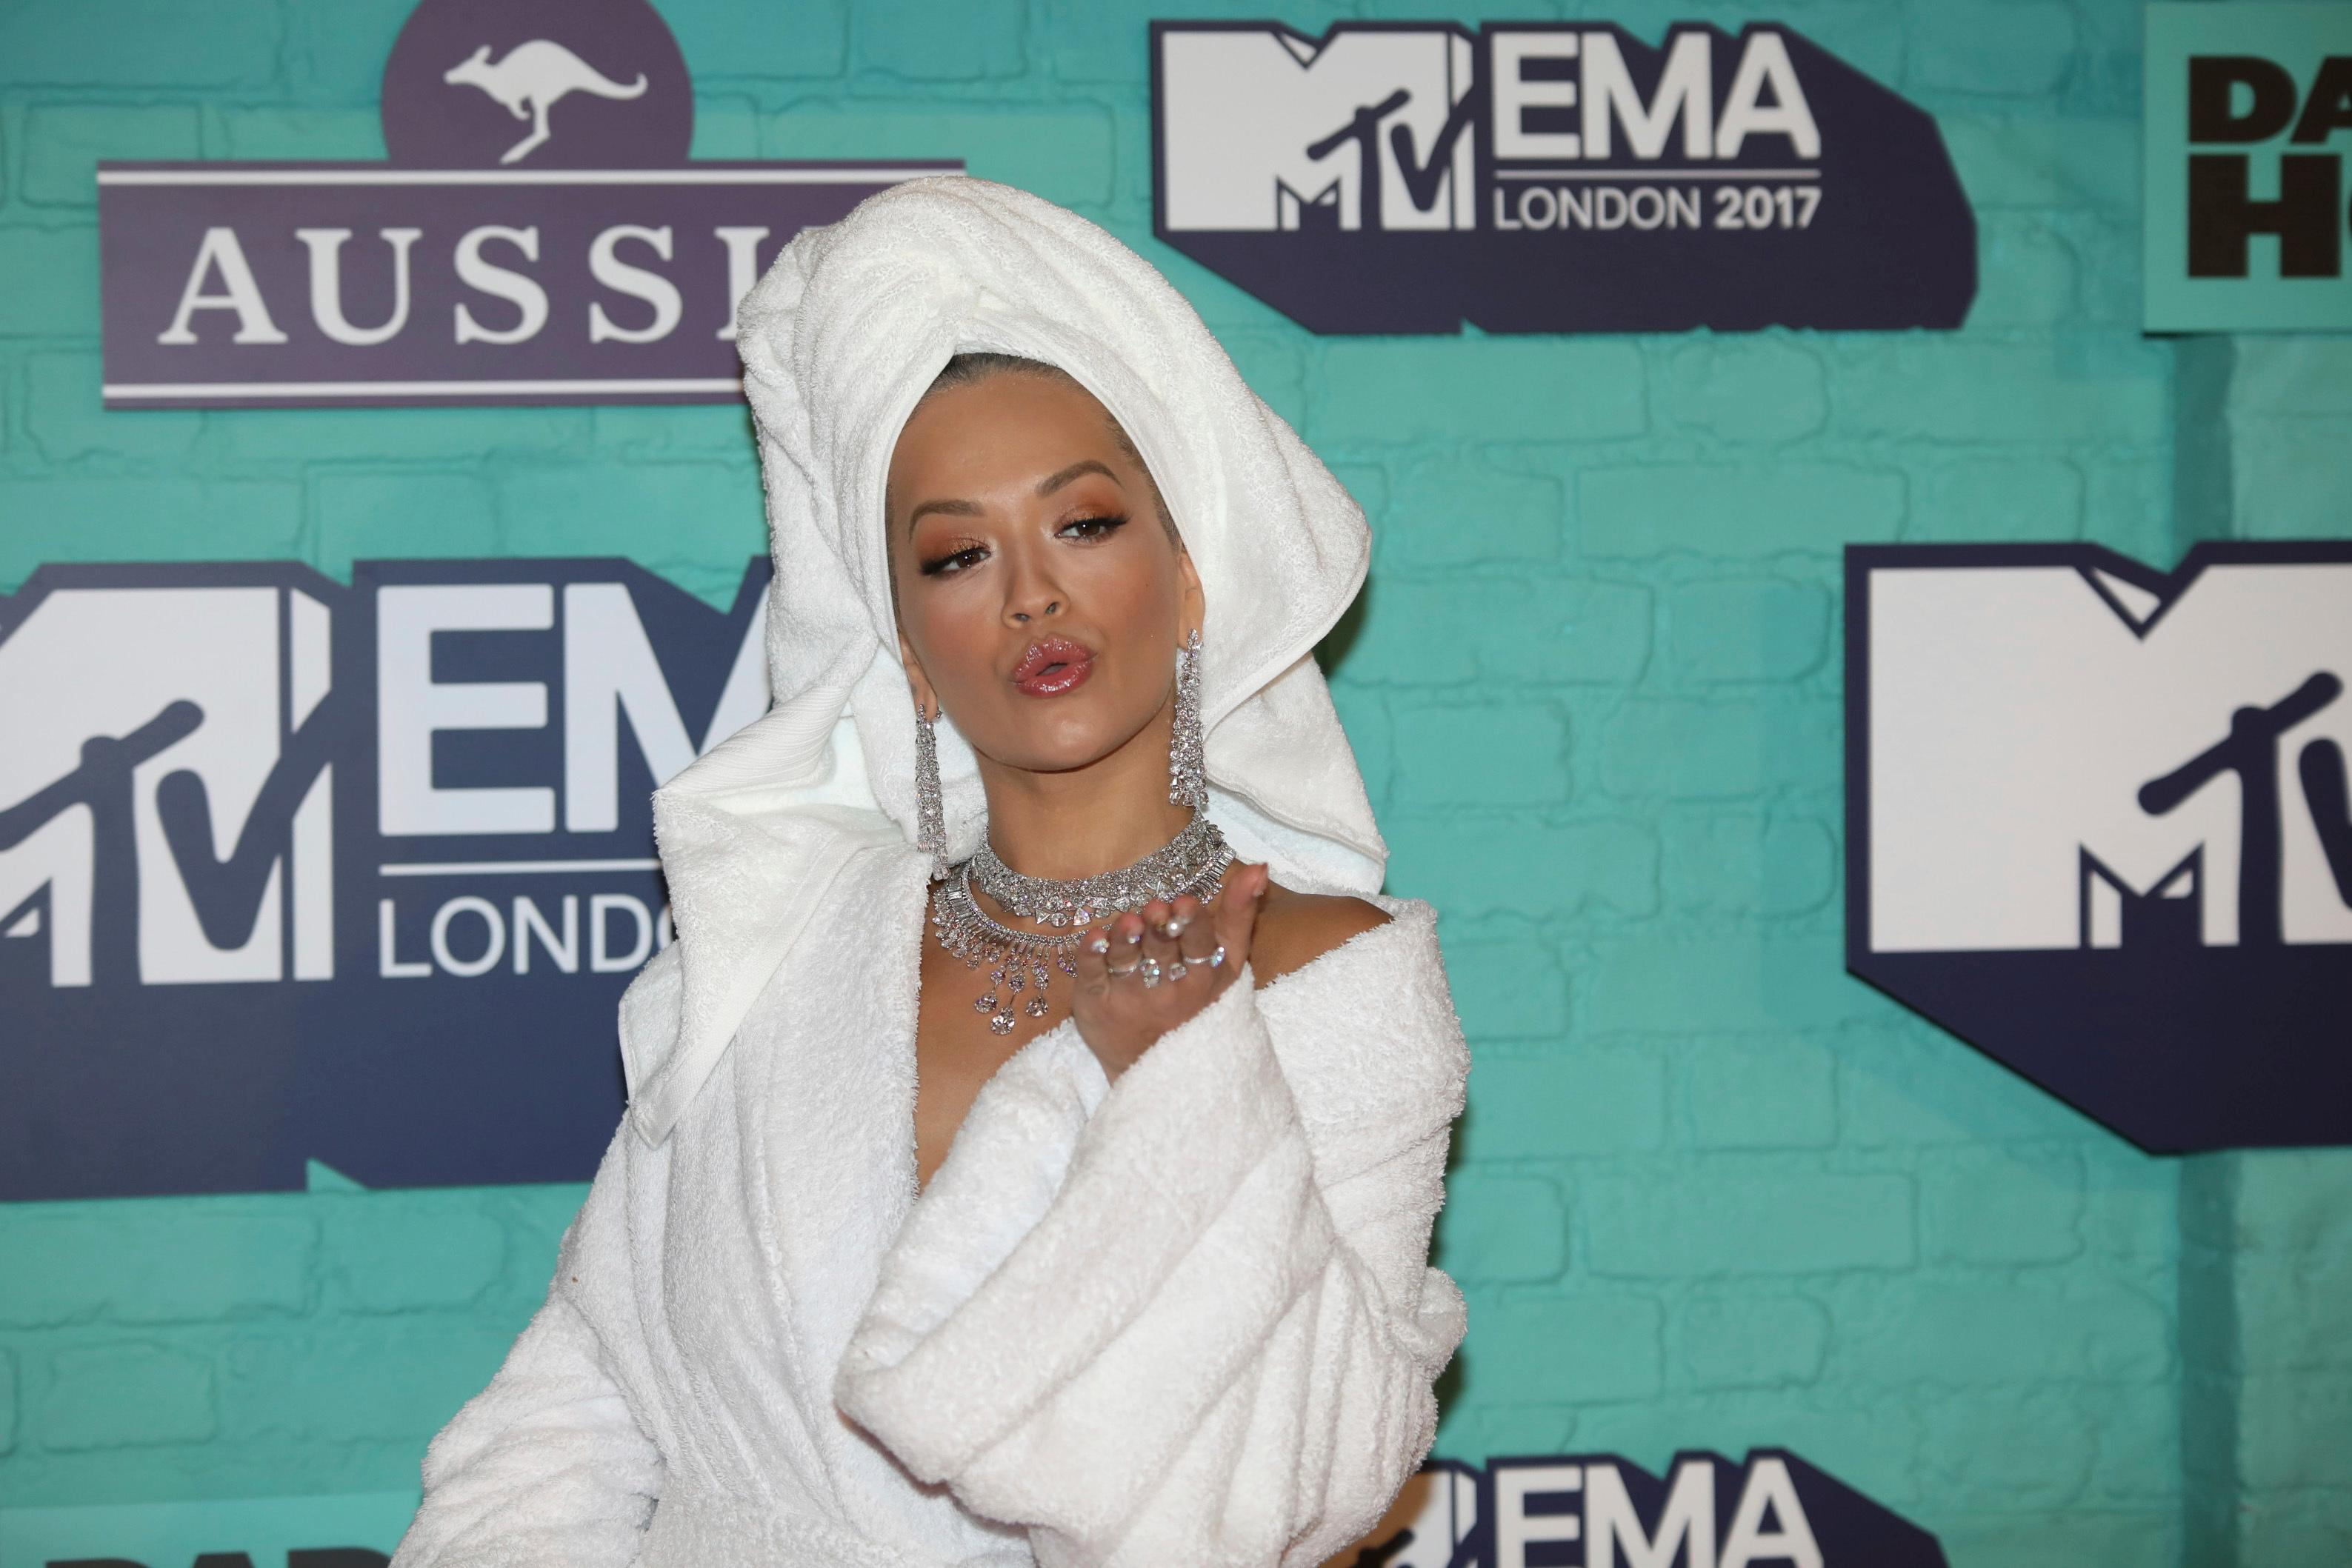 Singer Rita Ora poses for photographers upon arrival at the MTV European Music Awards 2017 in London, Sunday, Nov. 12th, 2017. (Photo by Vianney Le Caer/Invision/AP)